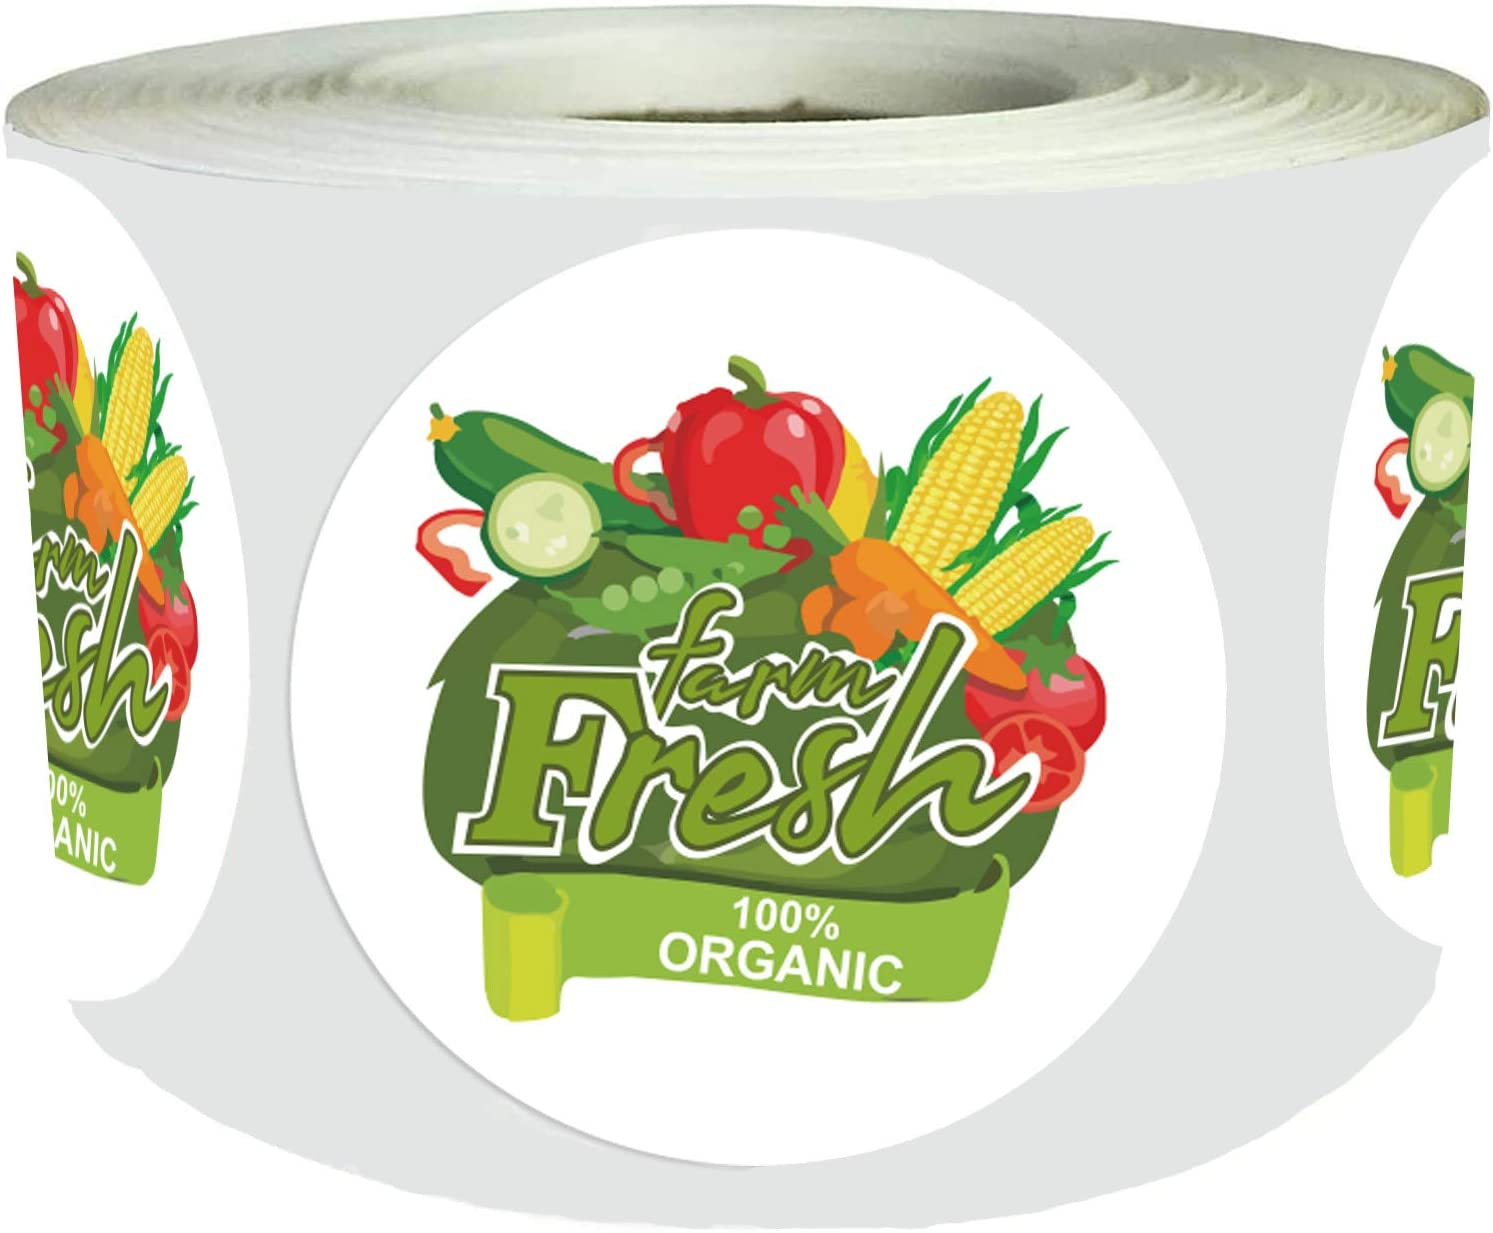 Farm Fresh Organic Food Rotation Labels 1.5 inch Grocery Organic Made Labels Round Circle Dots Adhesive Egg Carton Stickersfor Farmers Market Package 500pcs